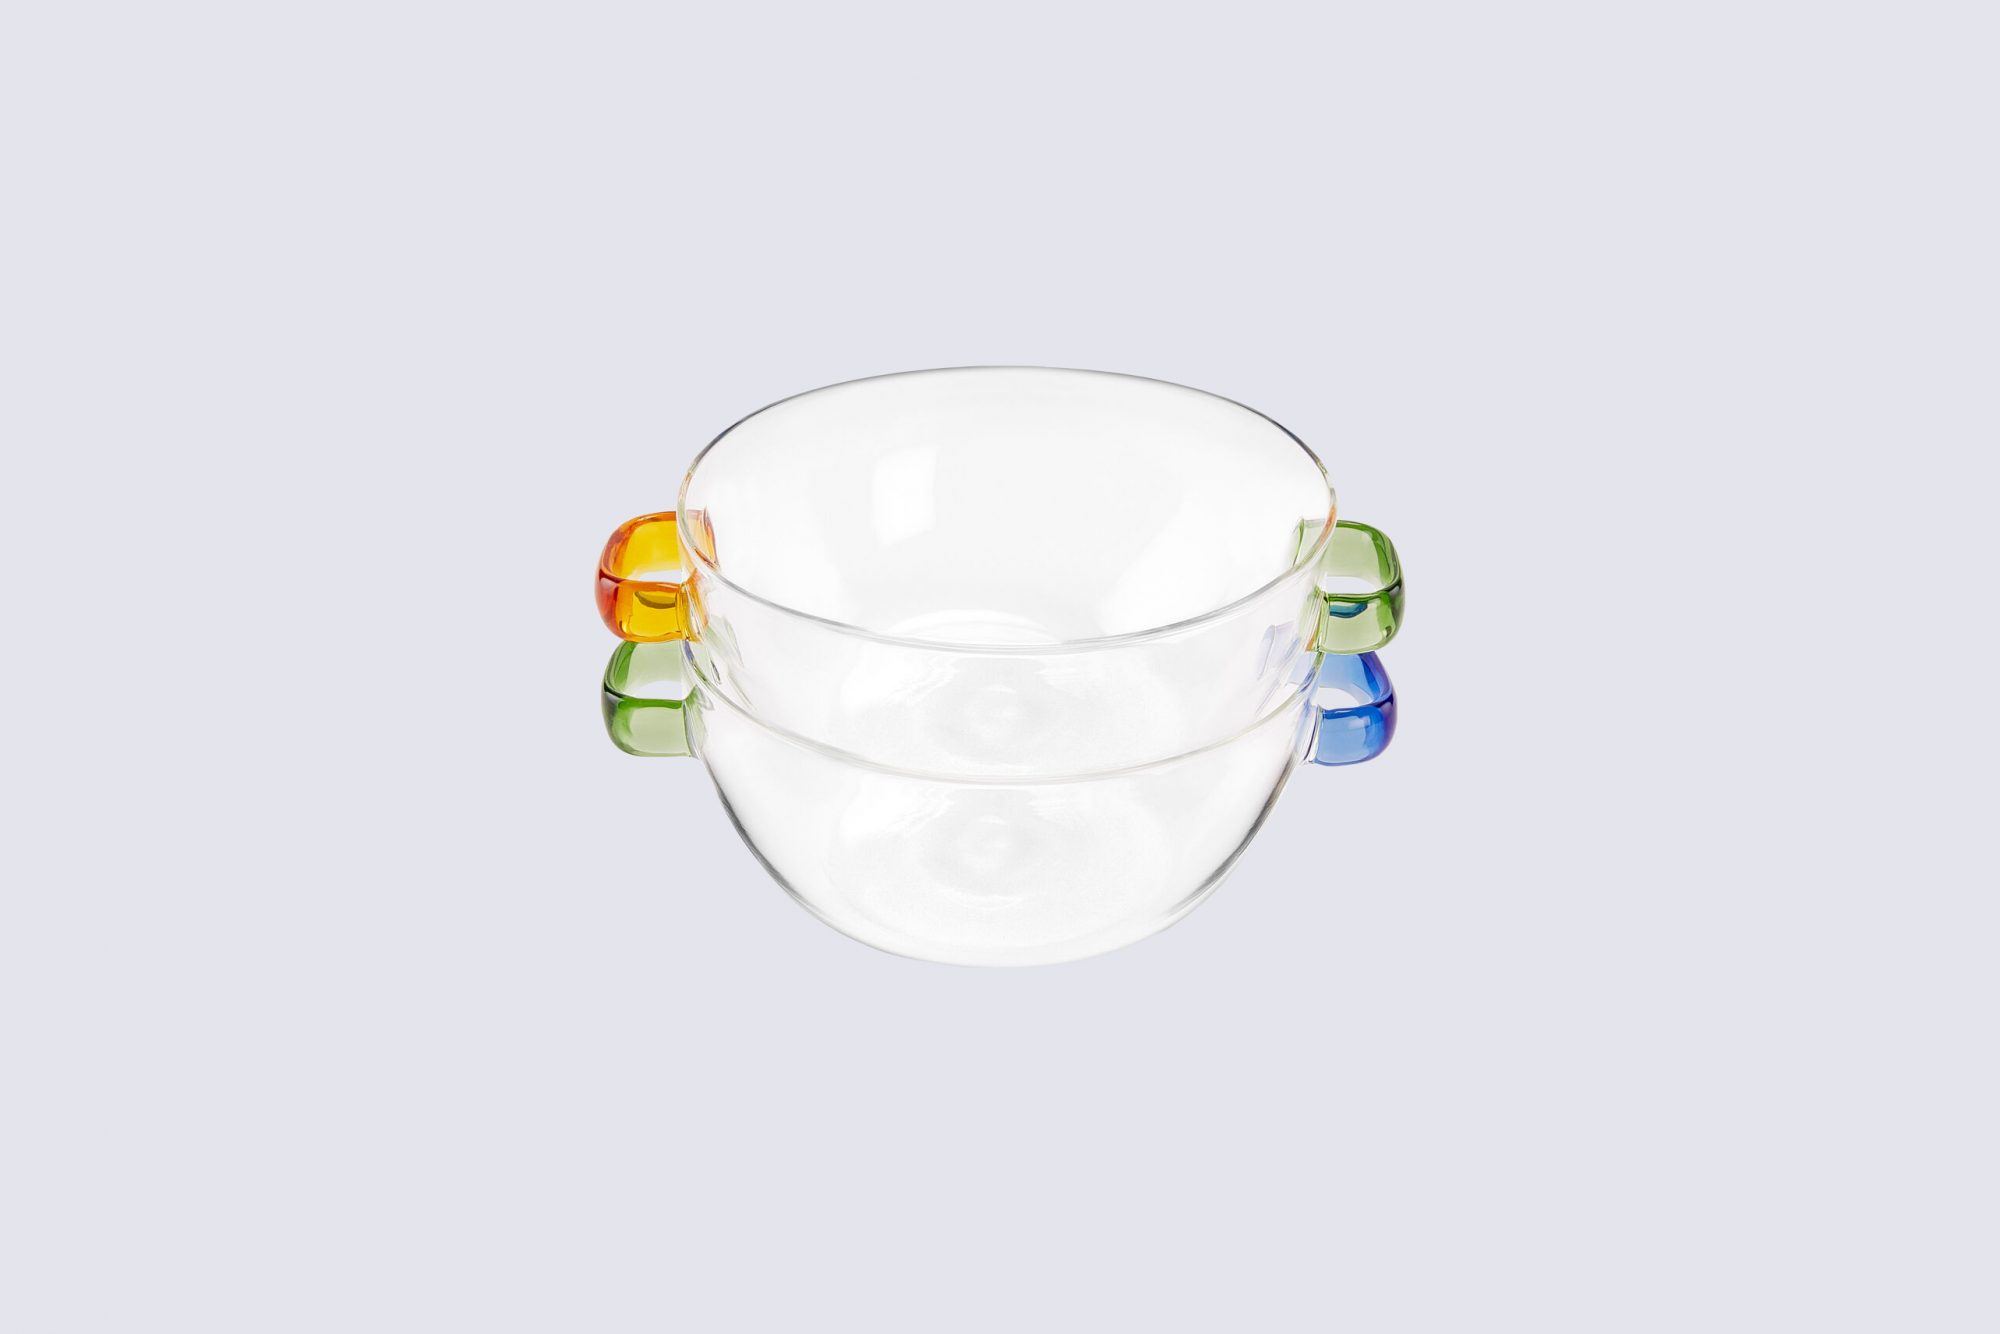 MoMA Design Store Multicolor Glass Bowls